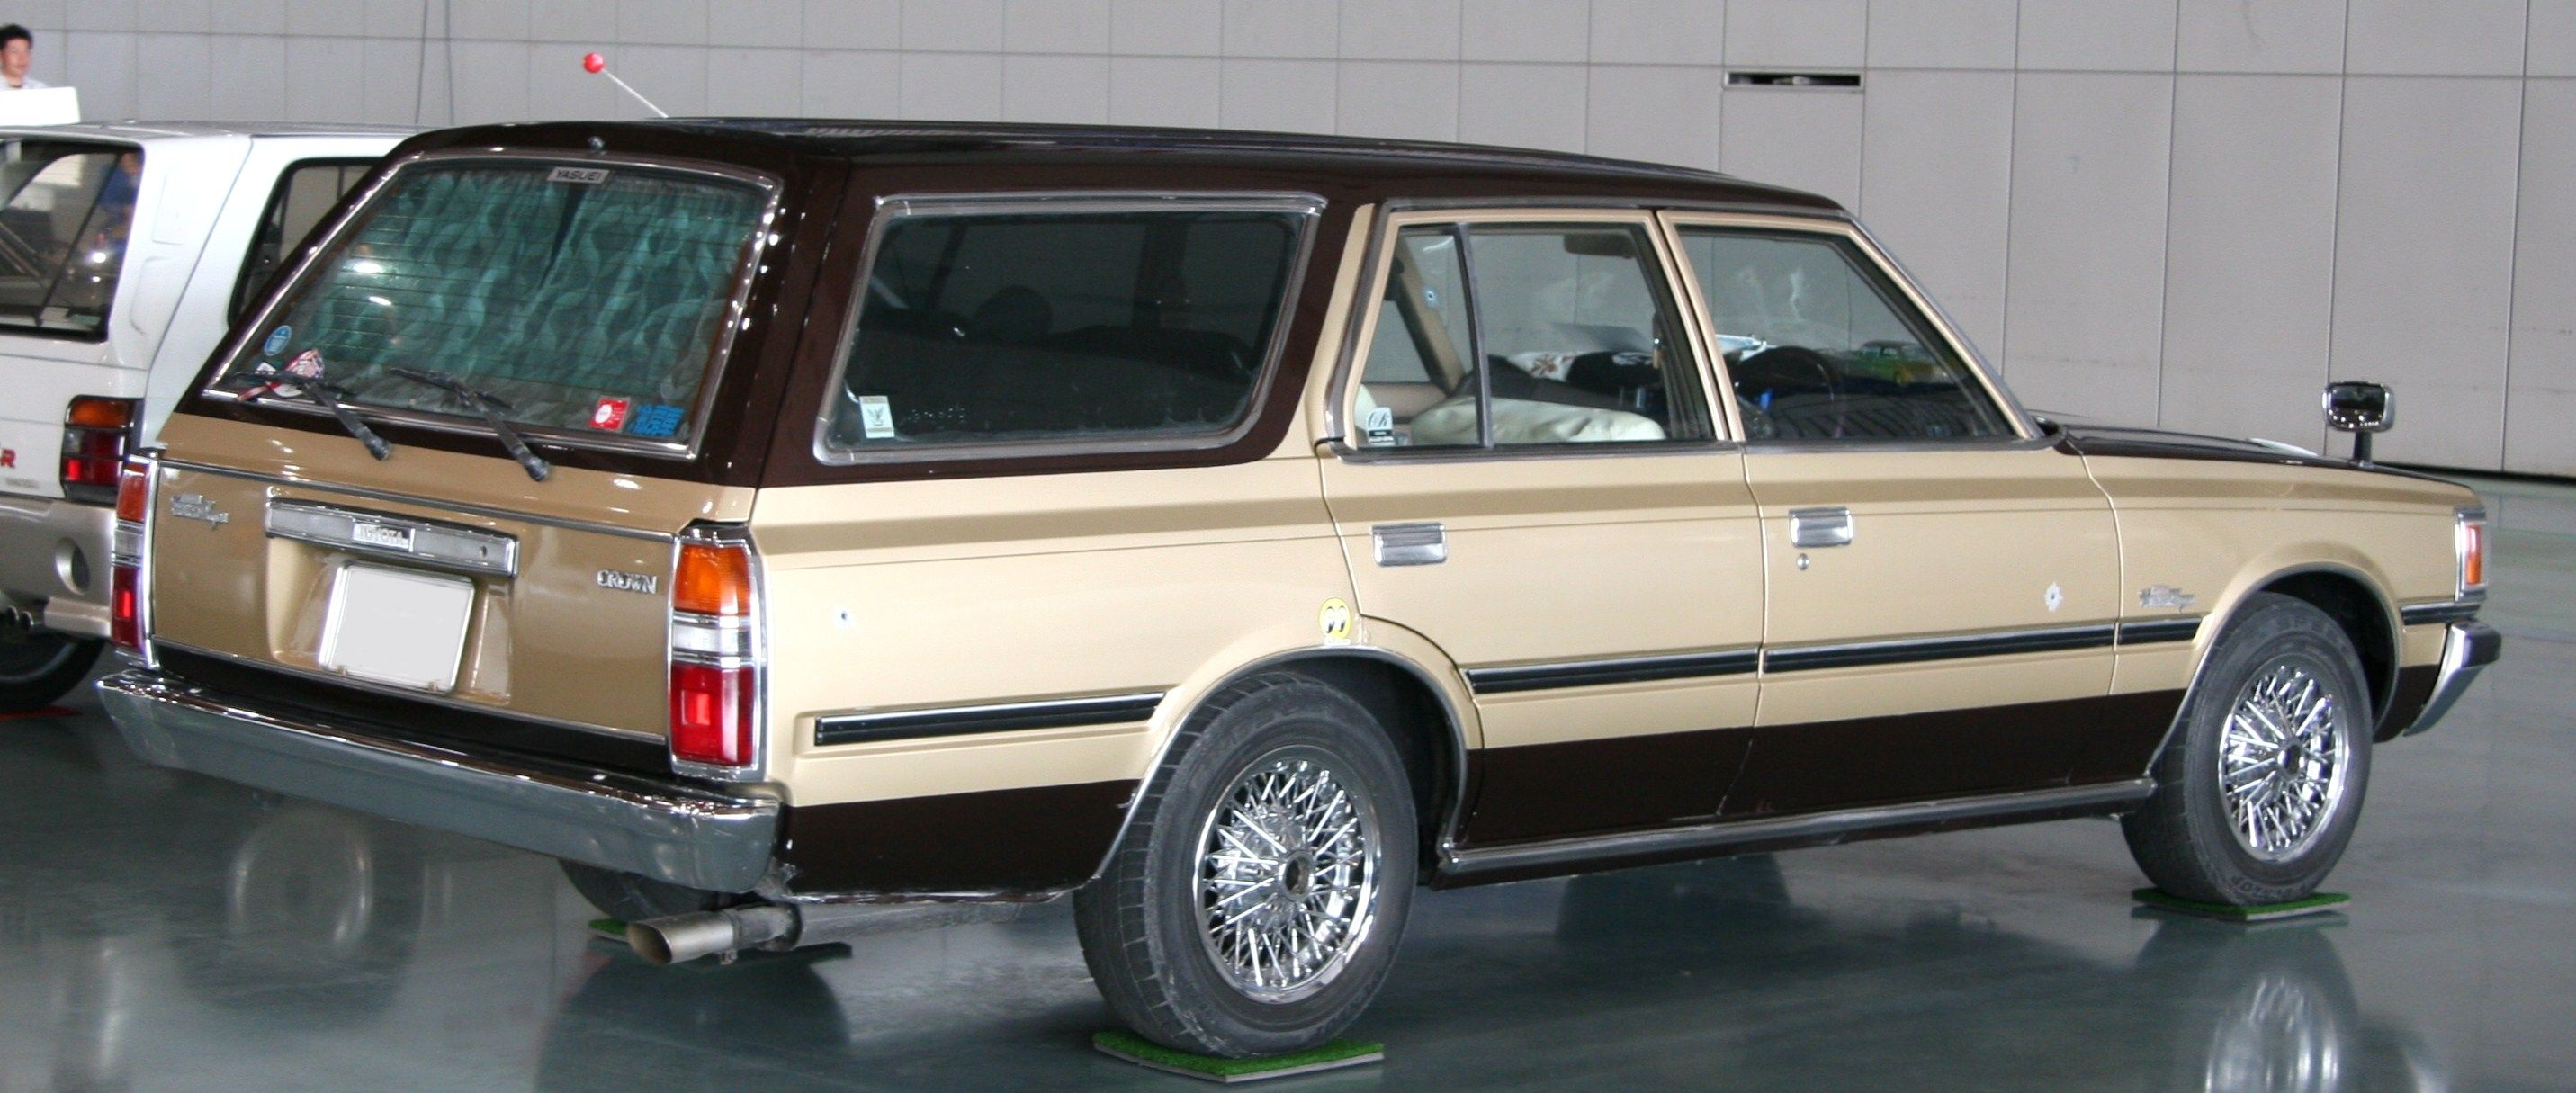 toyota crown custom estate Google Search ステーションワゴン